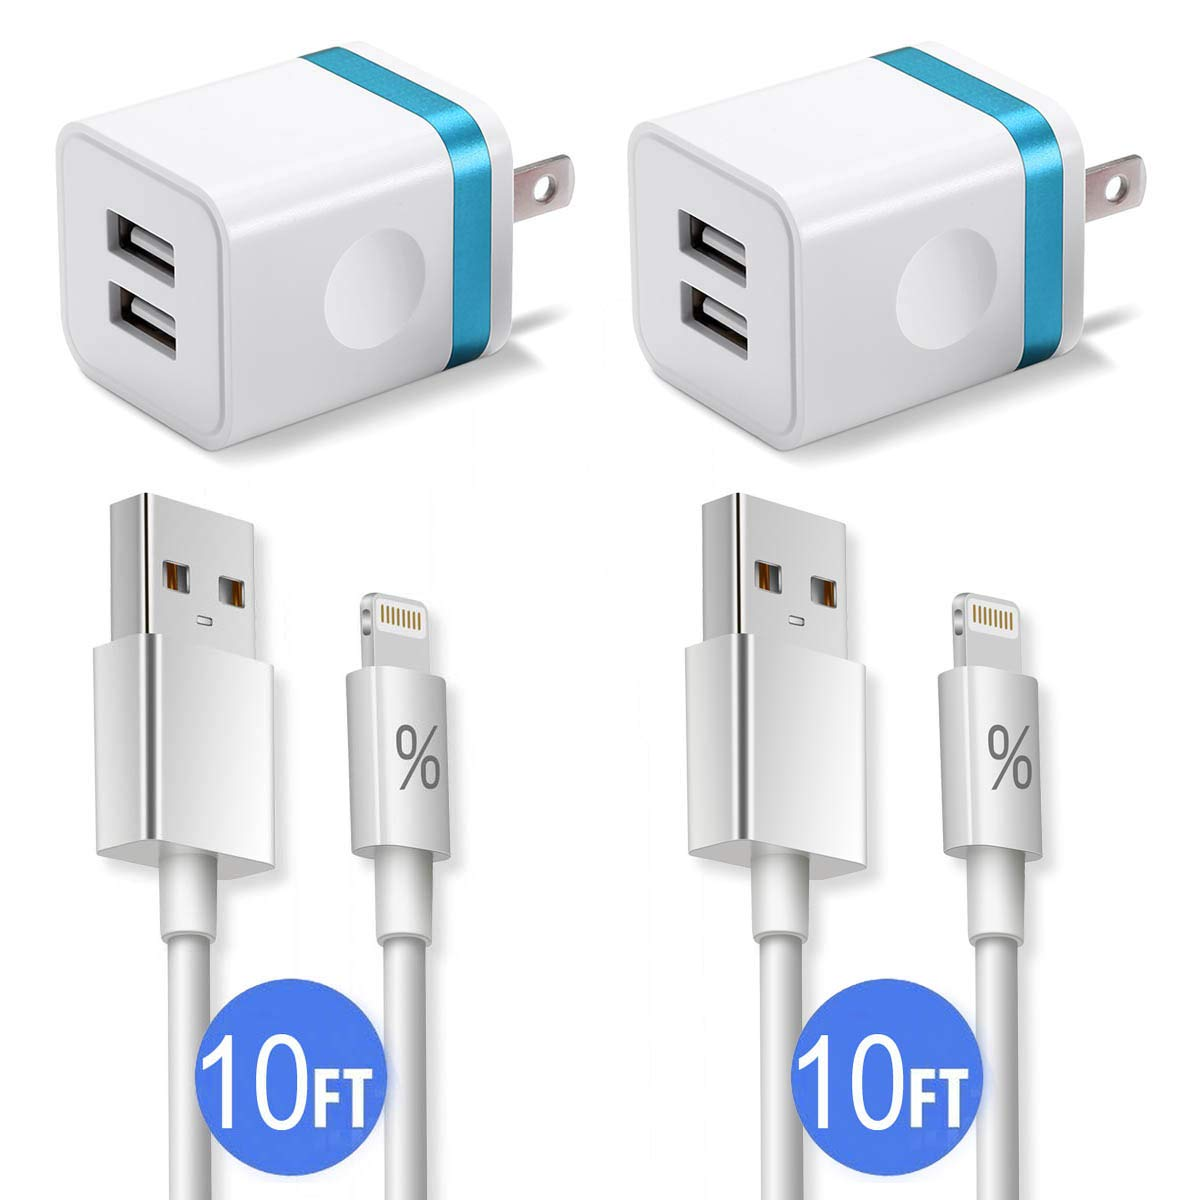 Phone Charger 10ft with Plug (4-in-1), FIMARR Dual USB Wall Charger Adapter Block with 2-Pack Charging Cable 10-Feet Compatible with Phone XS/Max/XR/X 8/7/6 Plus SE/5S/5C (UL Certified)